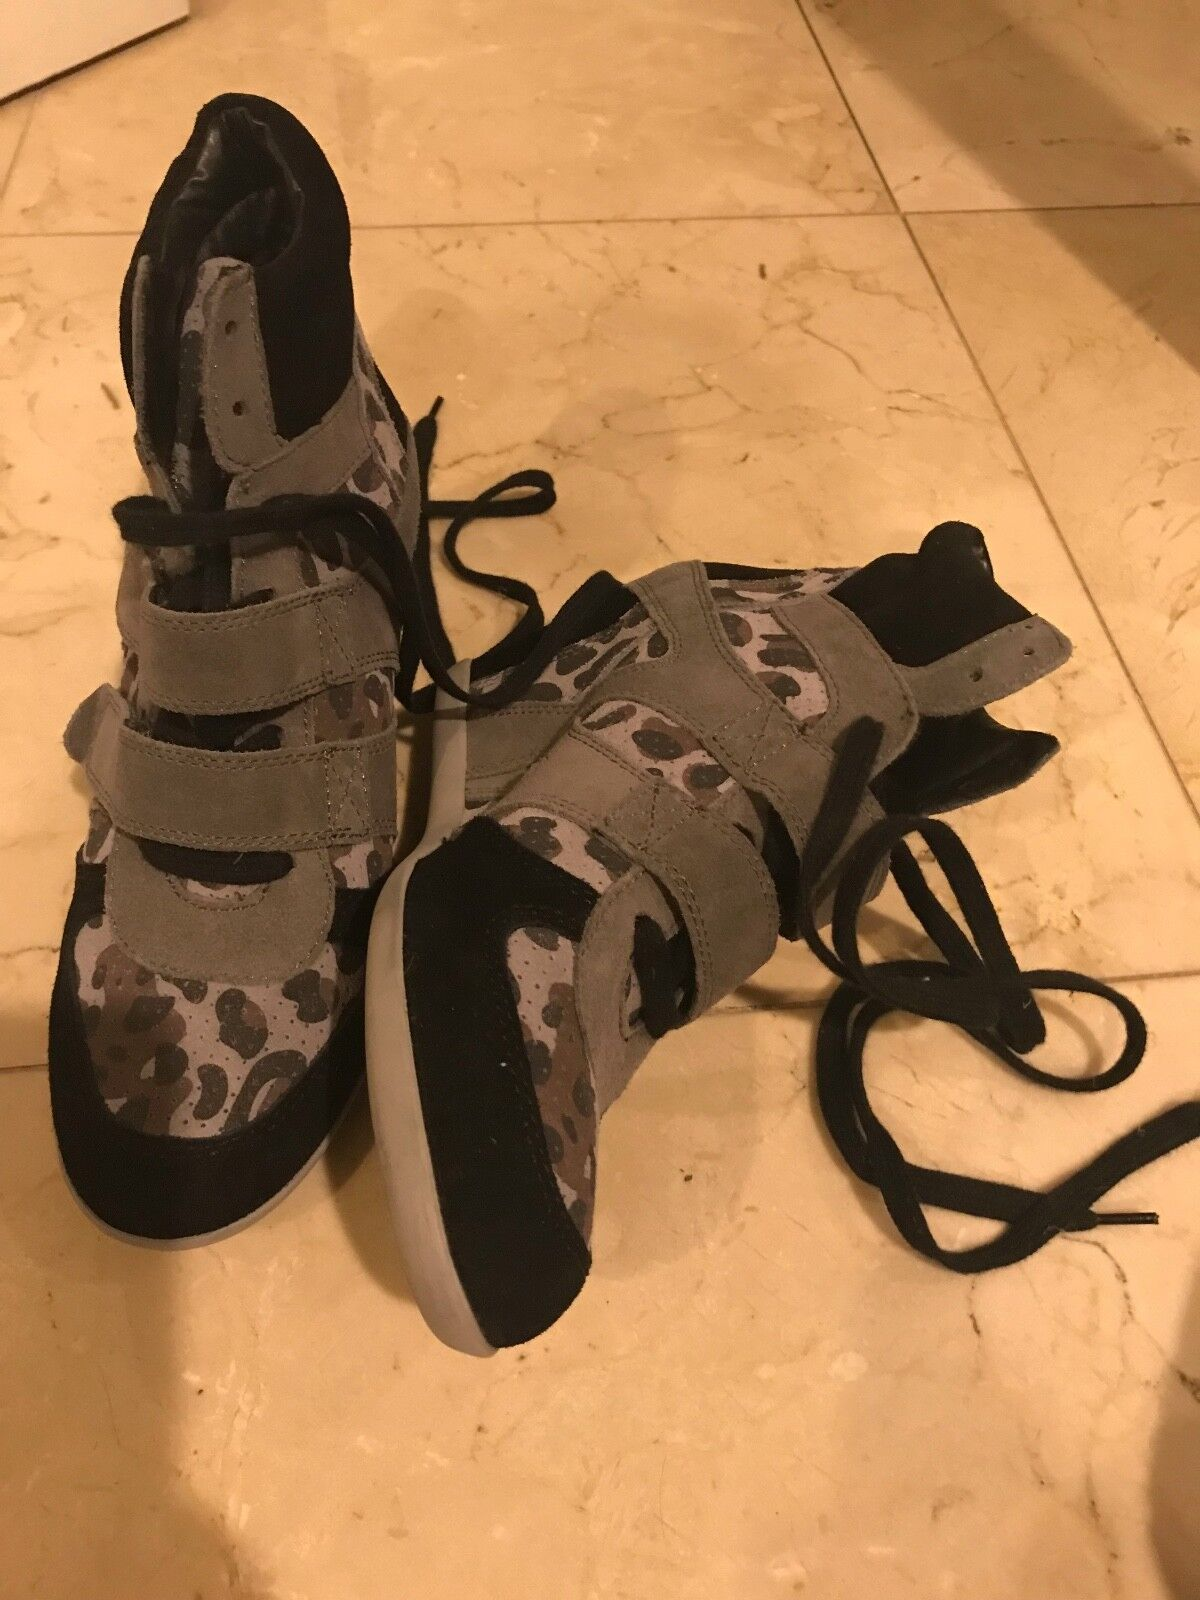 Nuova lista Preowned  ASH CAMO FASHION WEDGES WEDGES WEDGES avvioIES Dimensione 40  IVOWAISS  sconto online